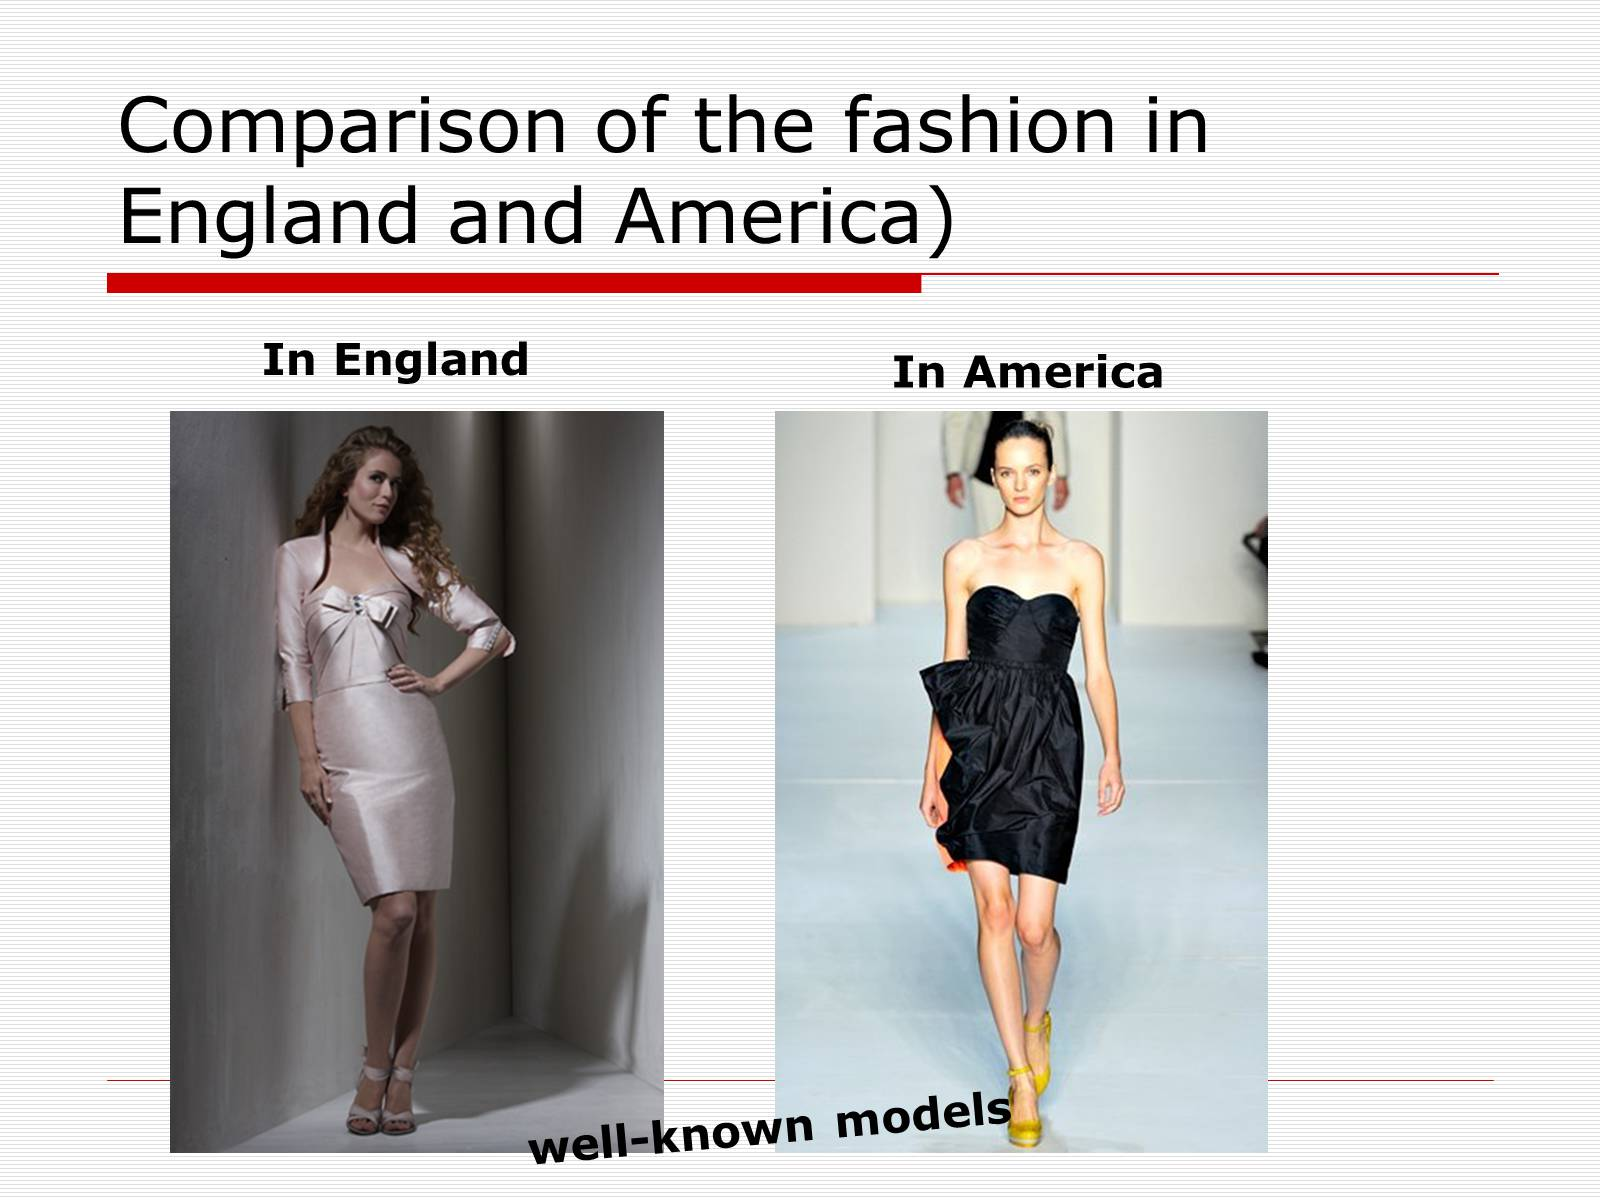 Презентація на тему «Comparison of the fashion in England and America» - Слайд #48